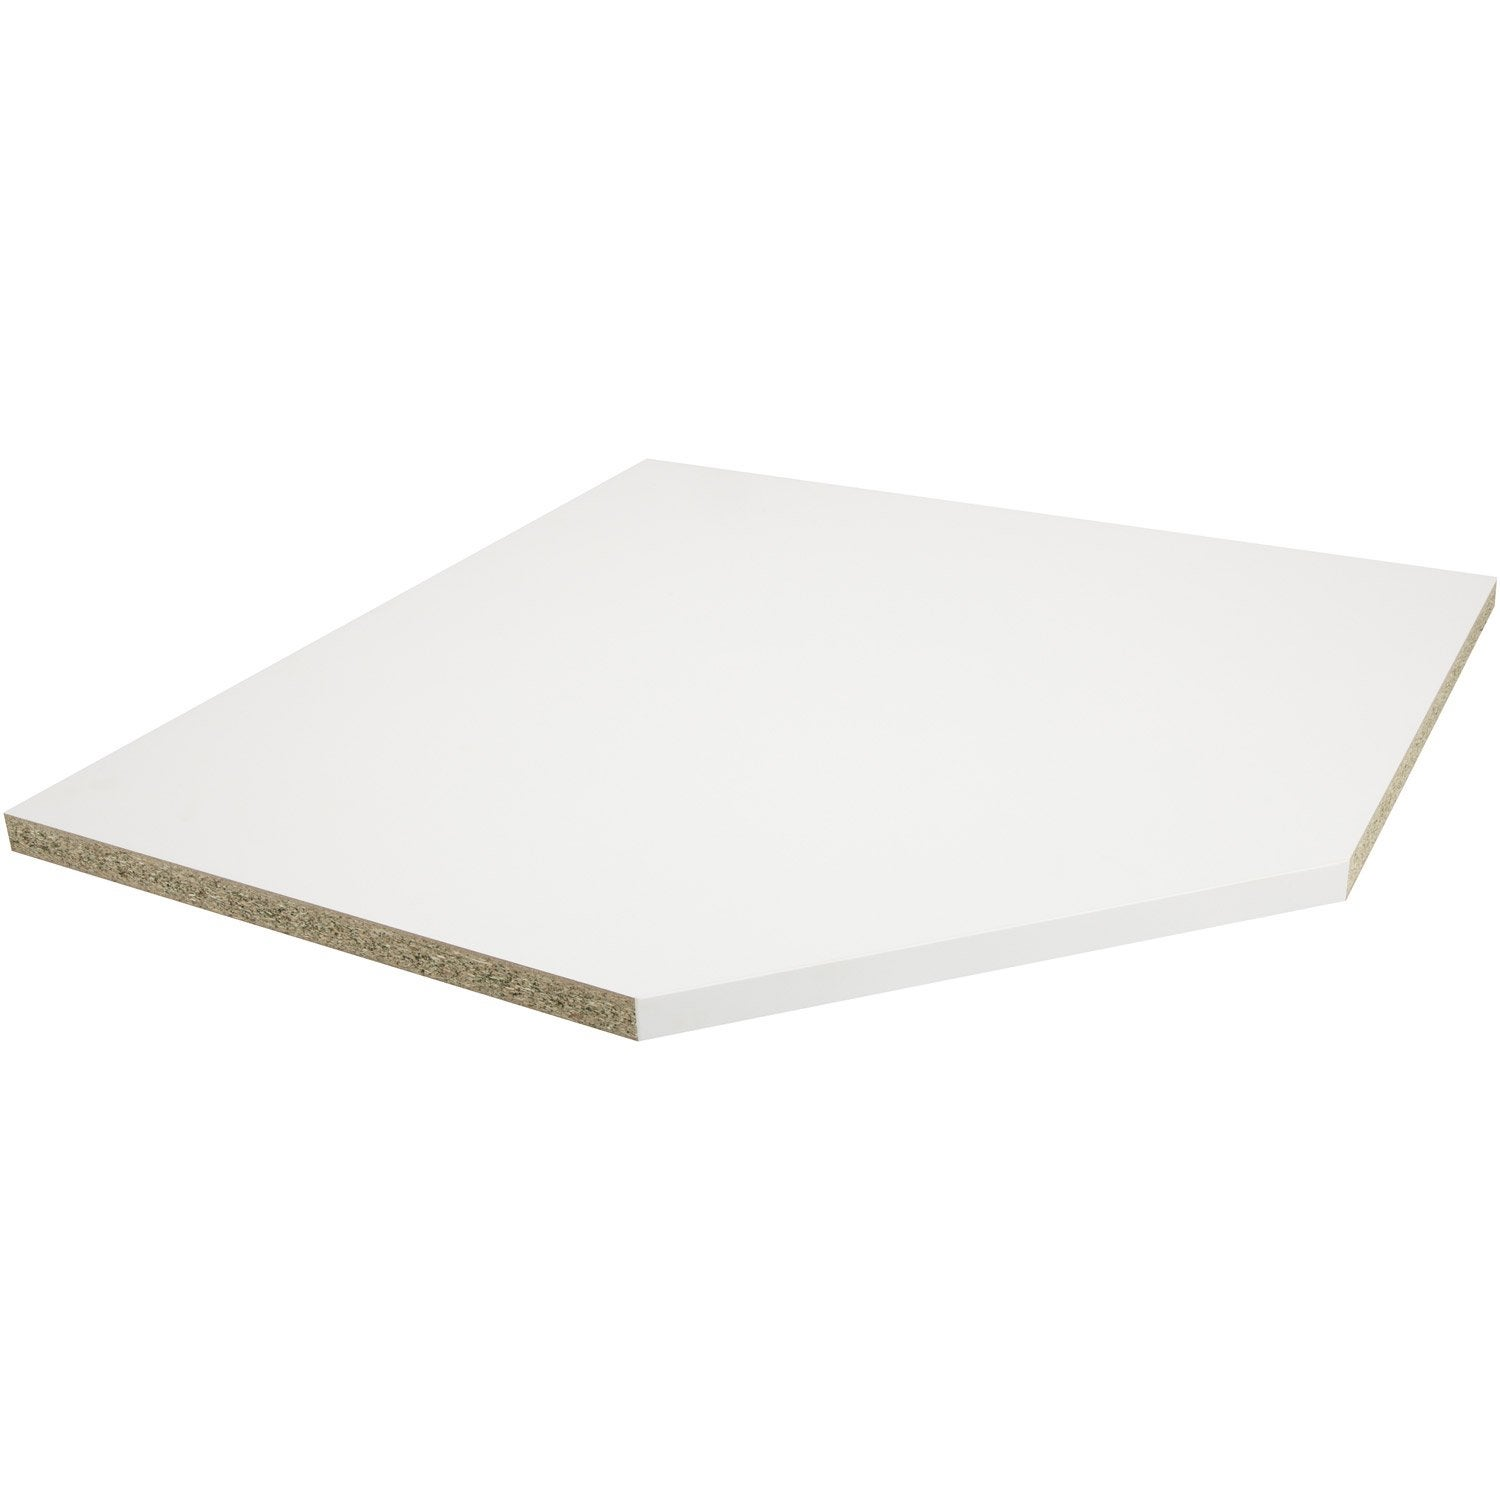 Plan dangle stratifié Blanc Mat L105 x P105 cm, Ep38 mm  Leroy